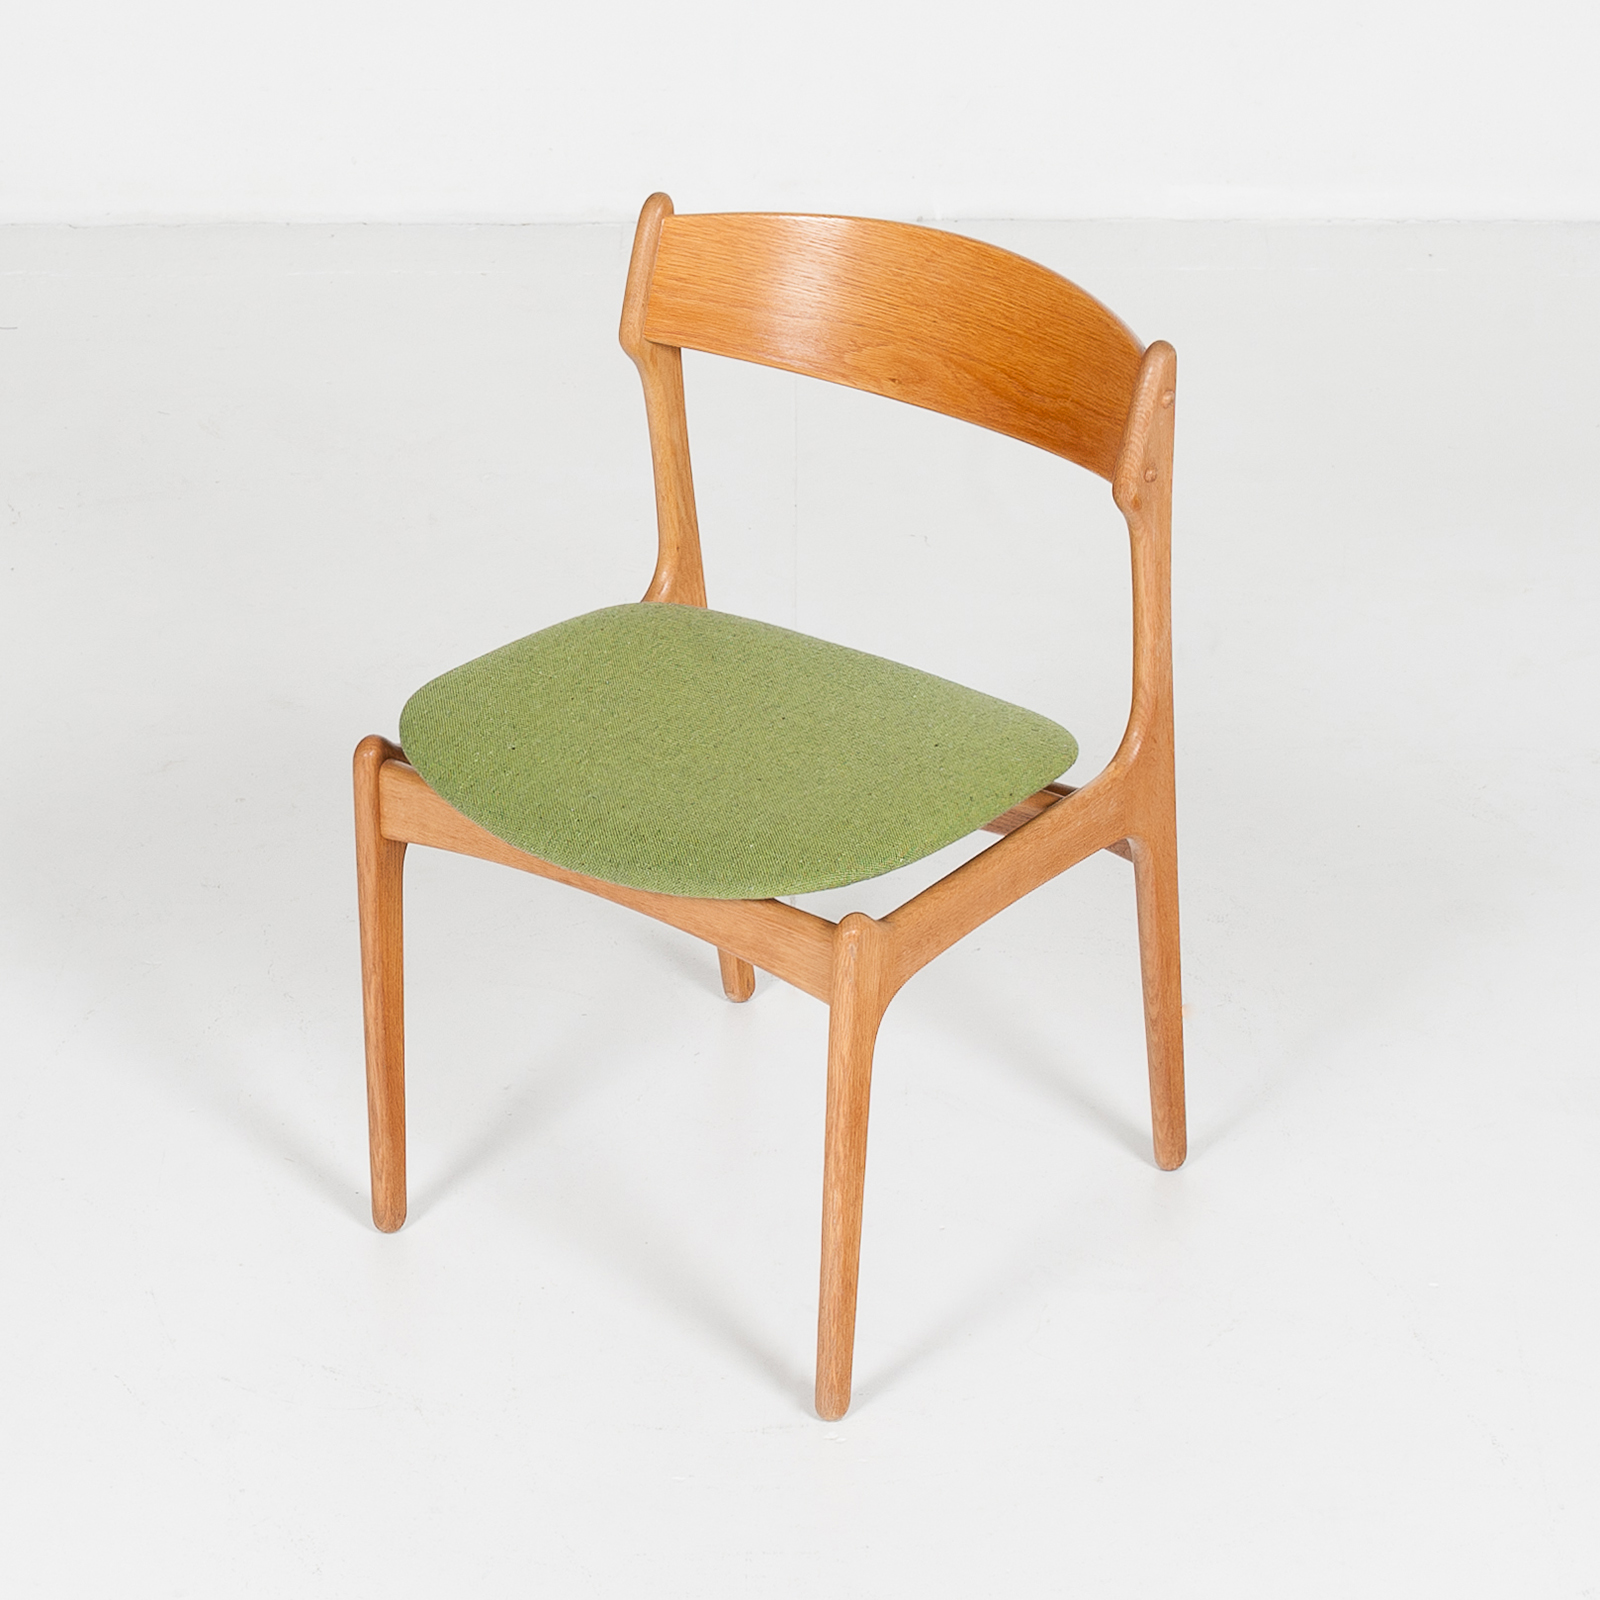 Set Of Four Dining Chairs By Erik Buch For O.d. Mobler In Oak And Green Upholstery, 1960s, Denmark80